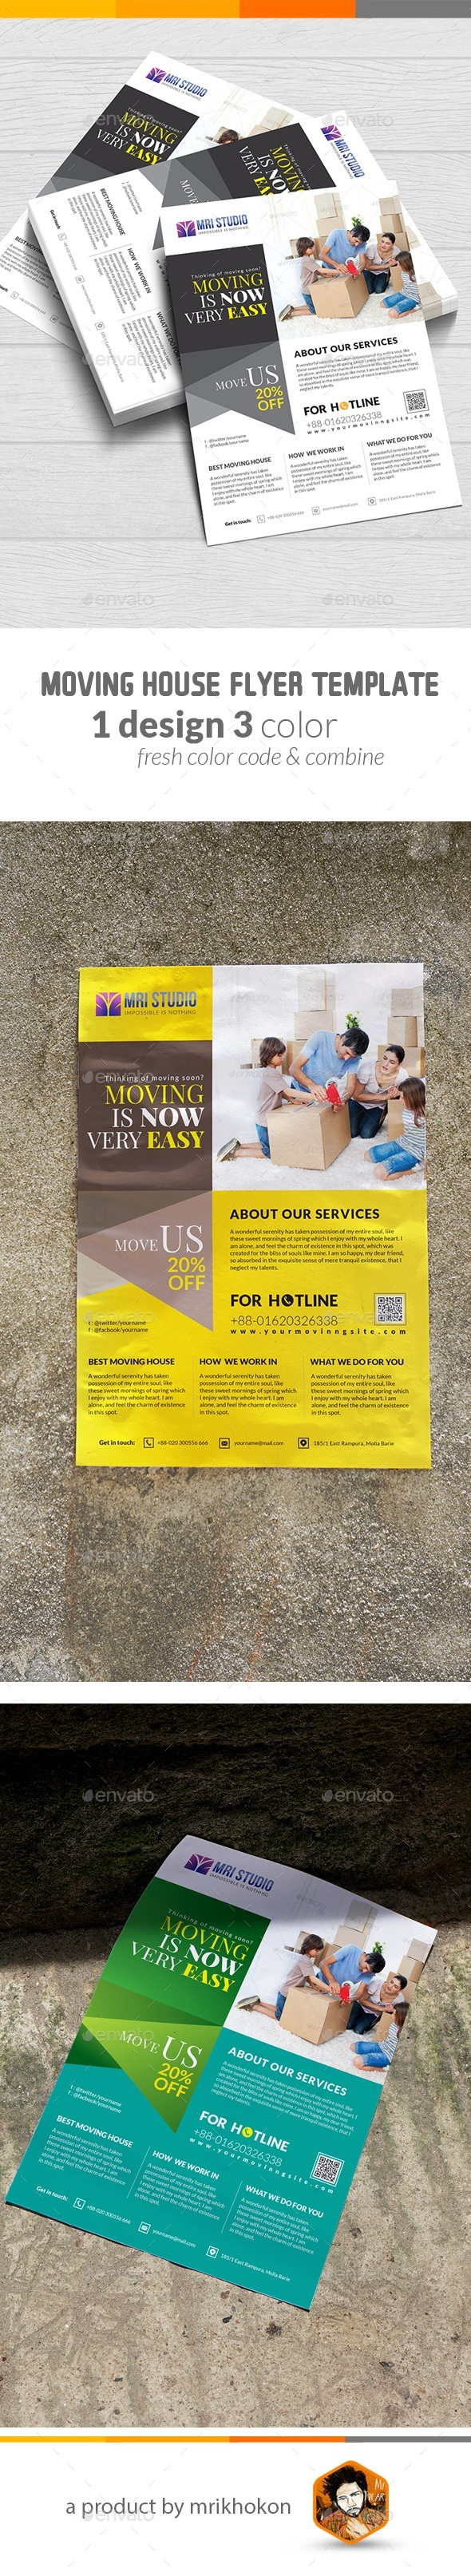 Moving House Flyer - Flyers Print Templates